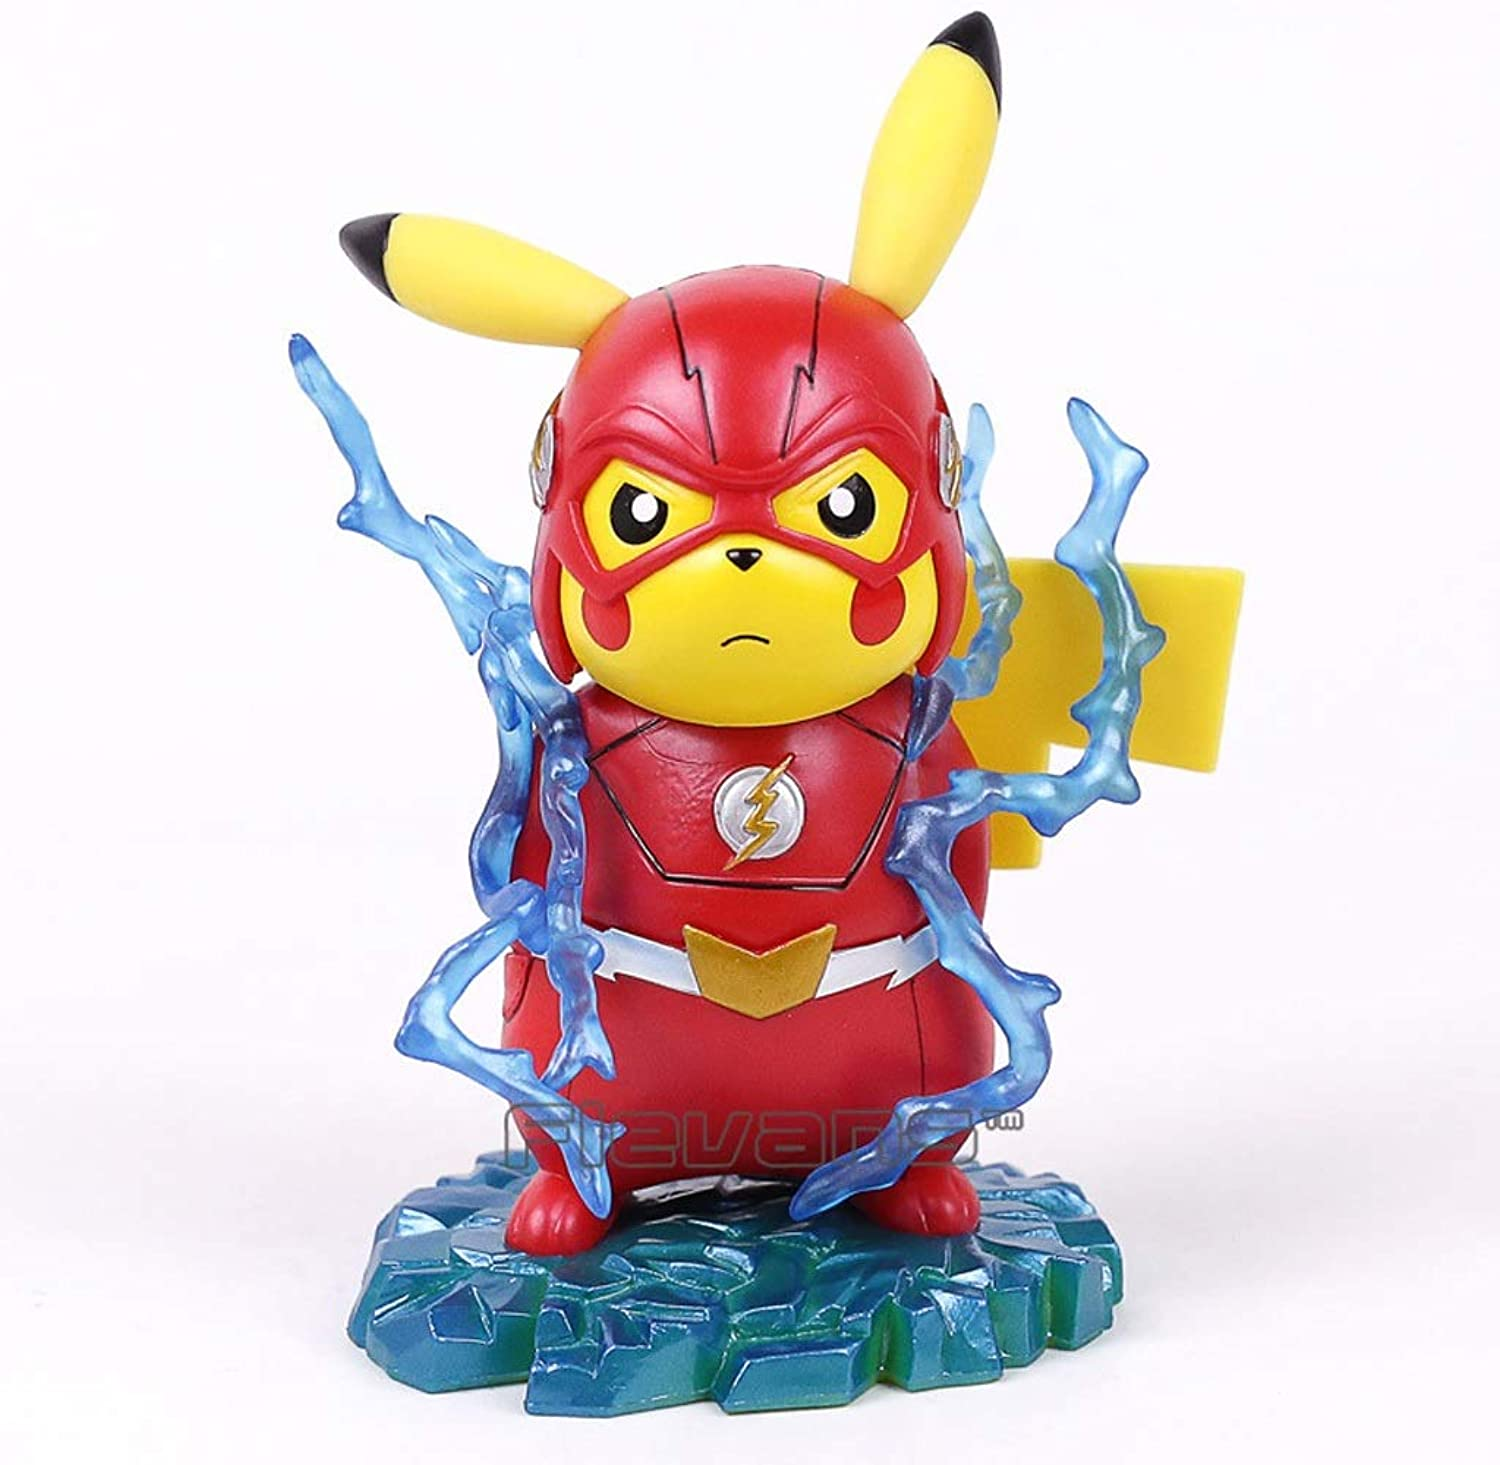 Zxwzzz Toy Statue Pokemon Toy Model Cartoon Character Gift Collection Flash Pikachu 15CM Statue